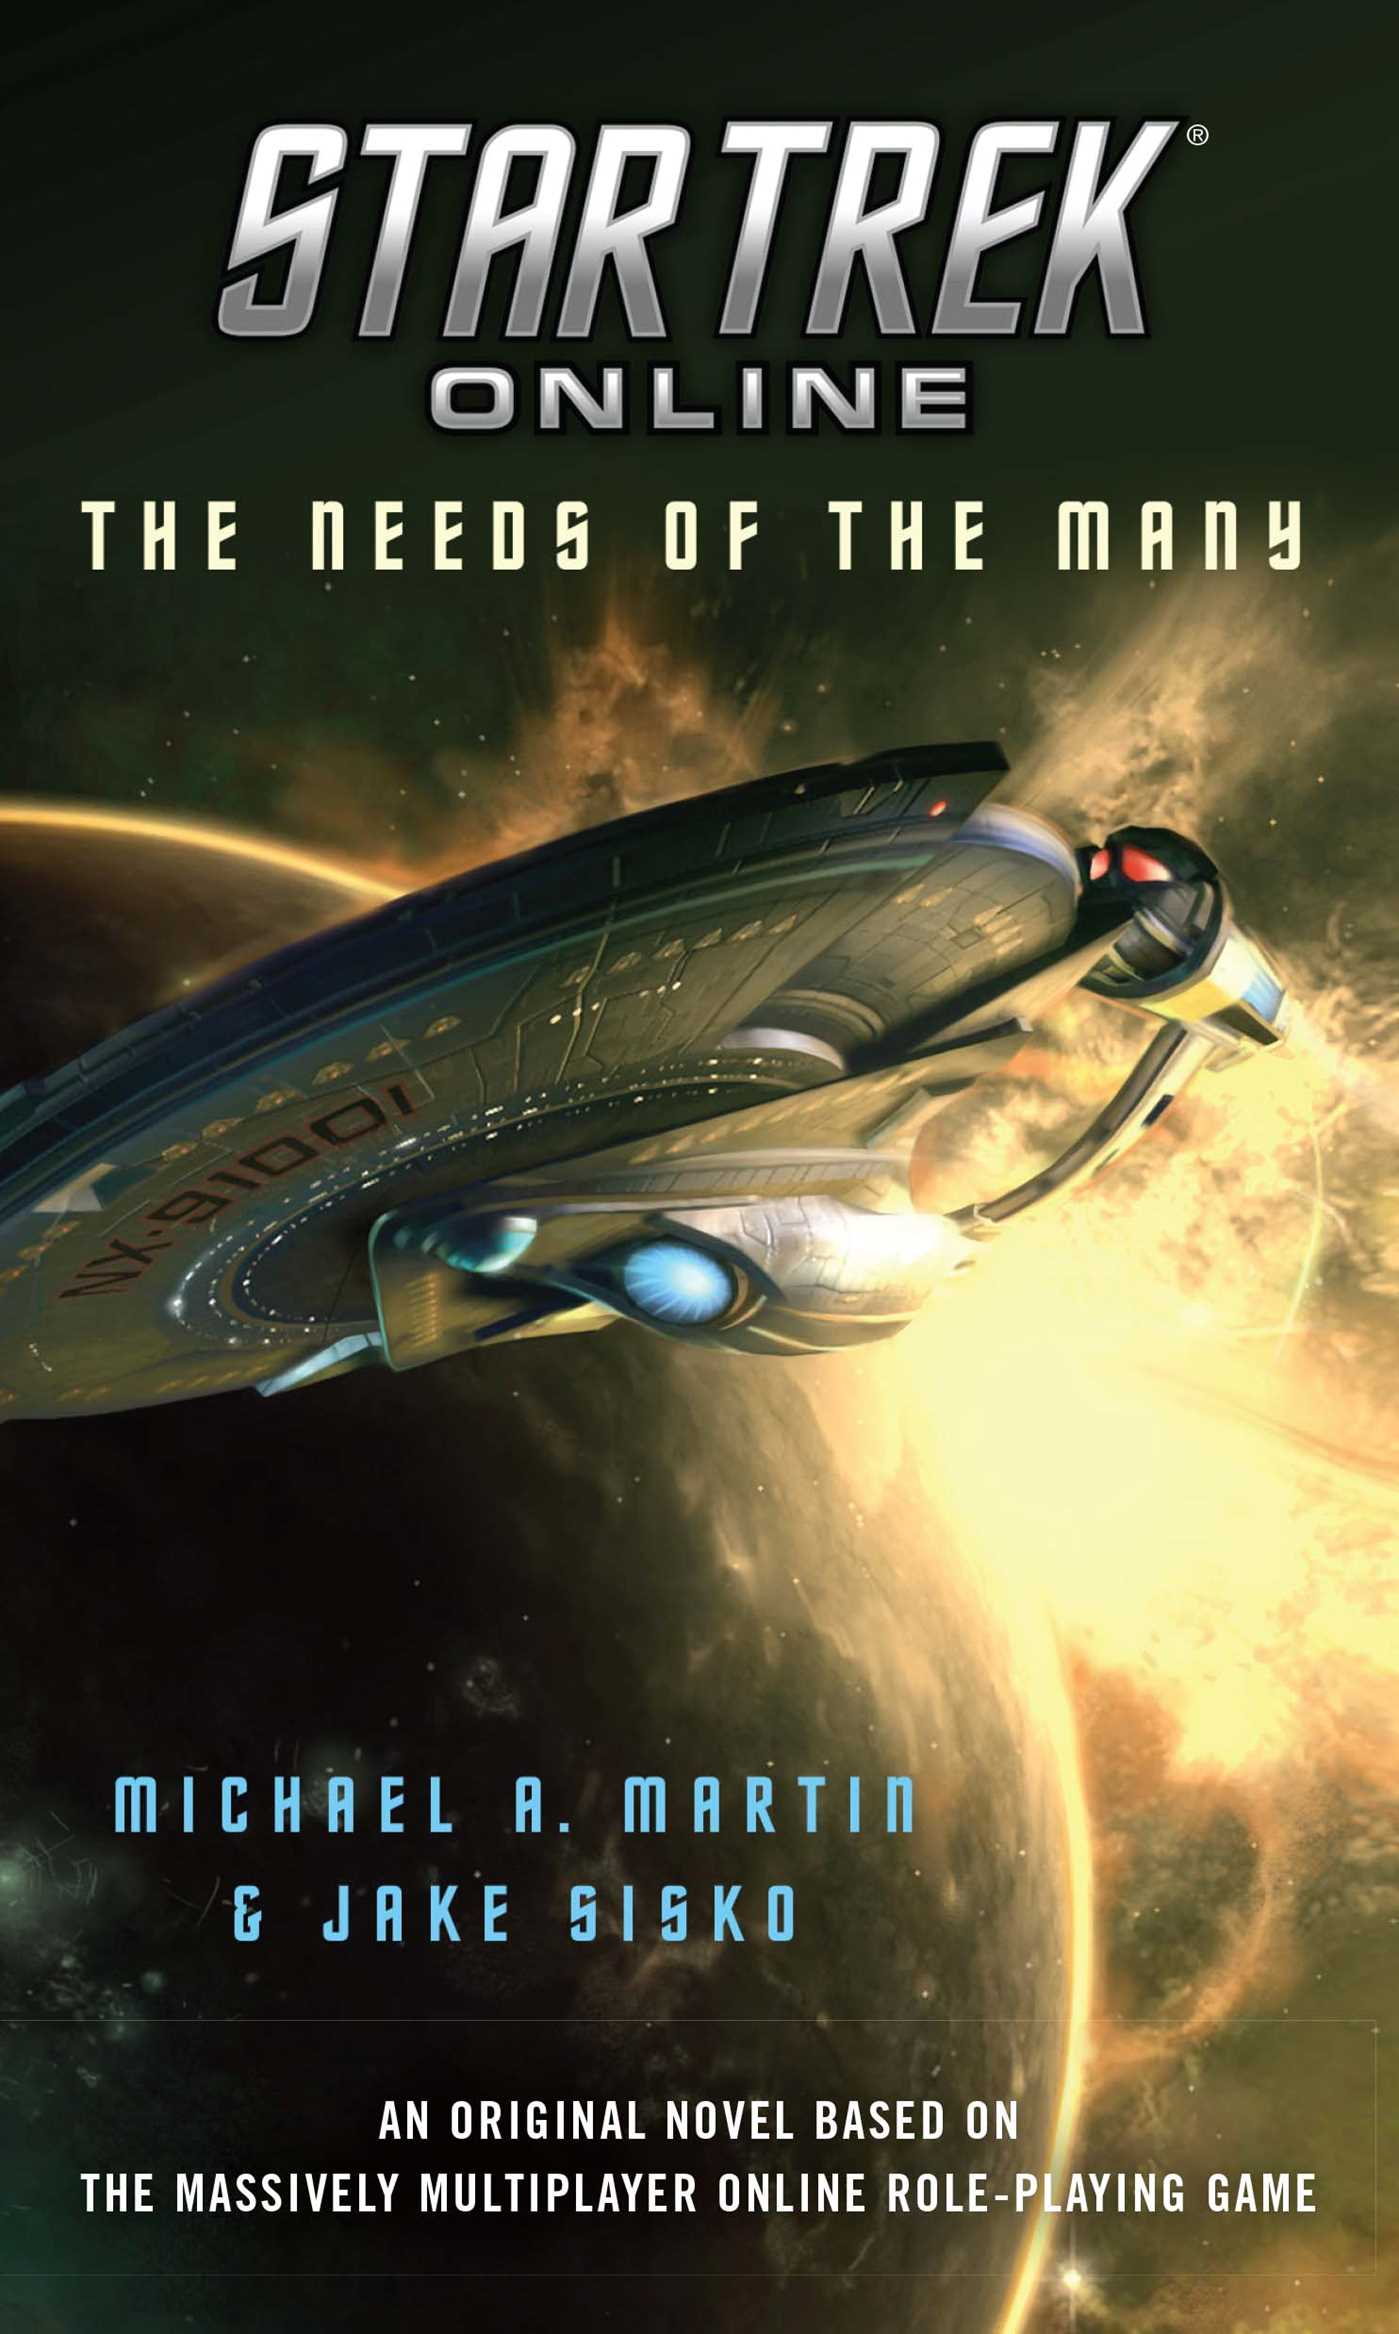 Star trek online the needs of the many 9781501130175 hr